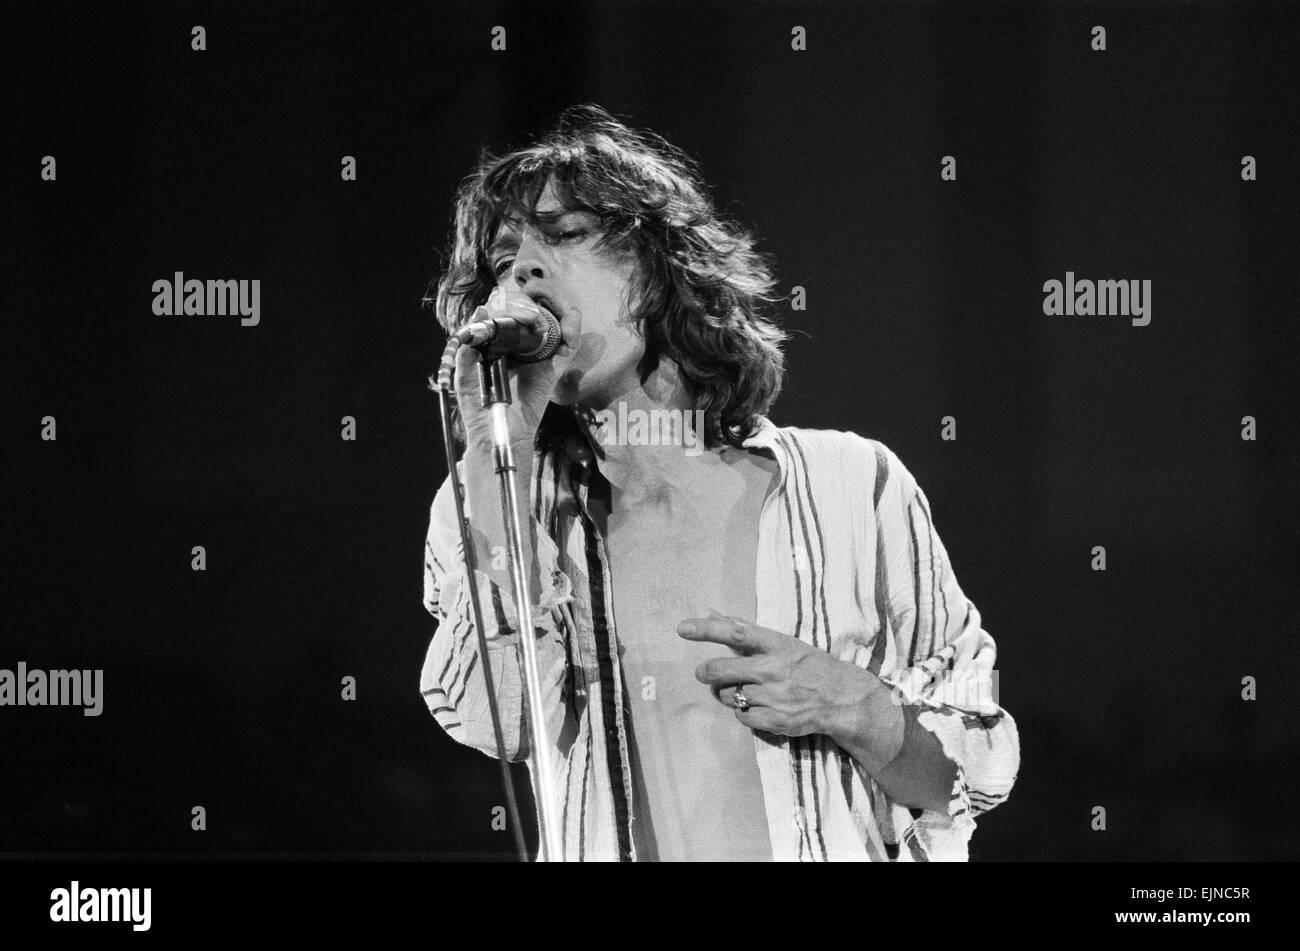 The Rolling Stones in concert at Hemisfair Plaza Arena & Convention Centre, San Antonio, Texas. Mick Jagger on stage. Stock Photo